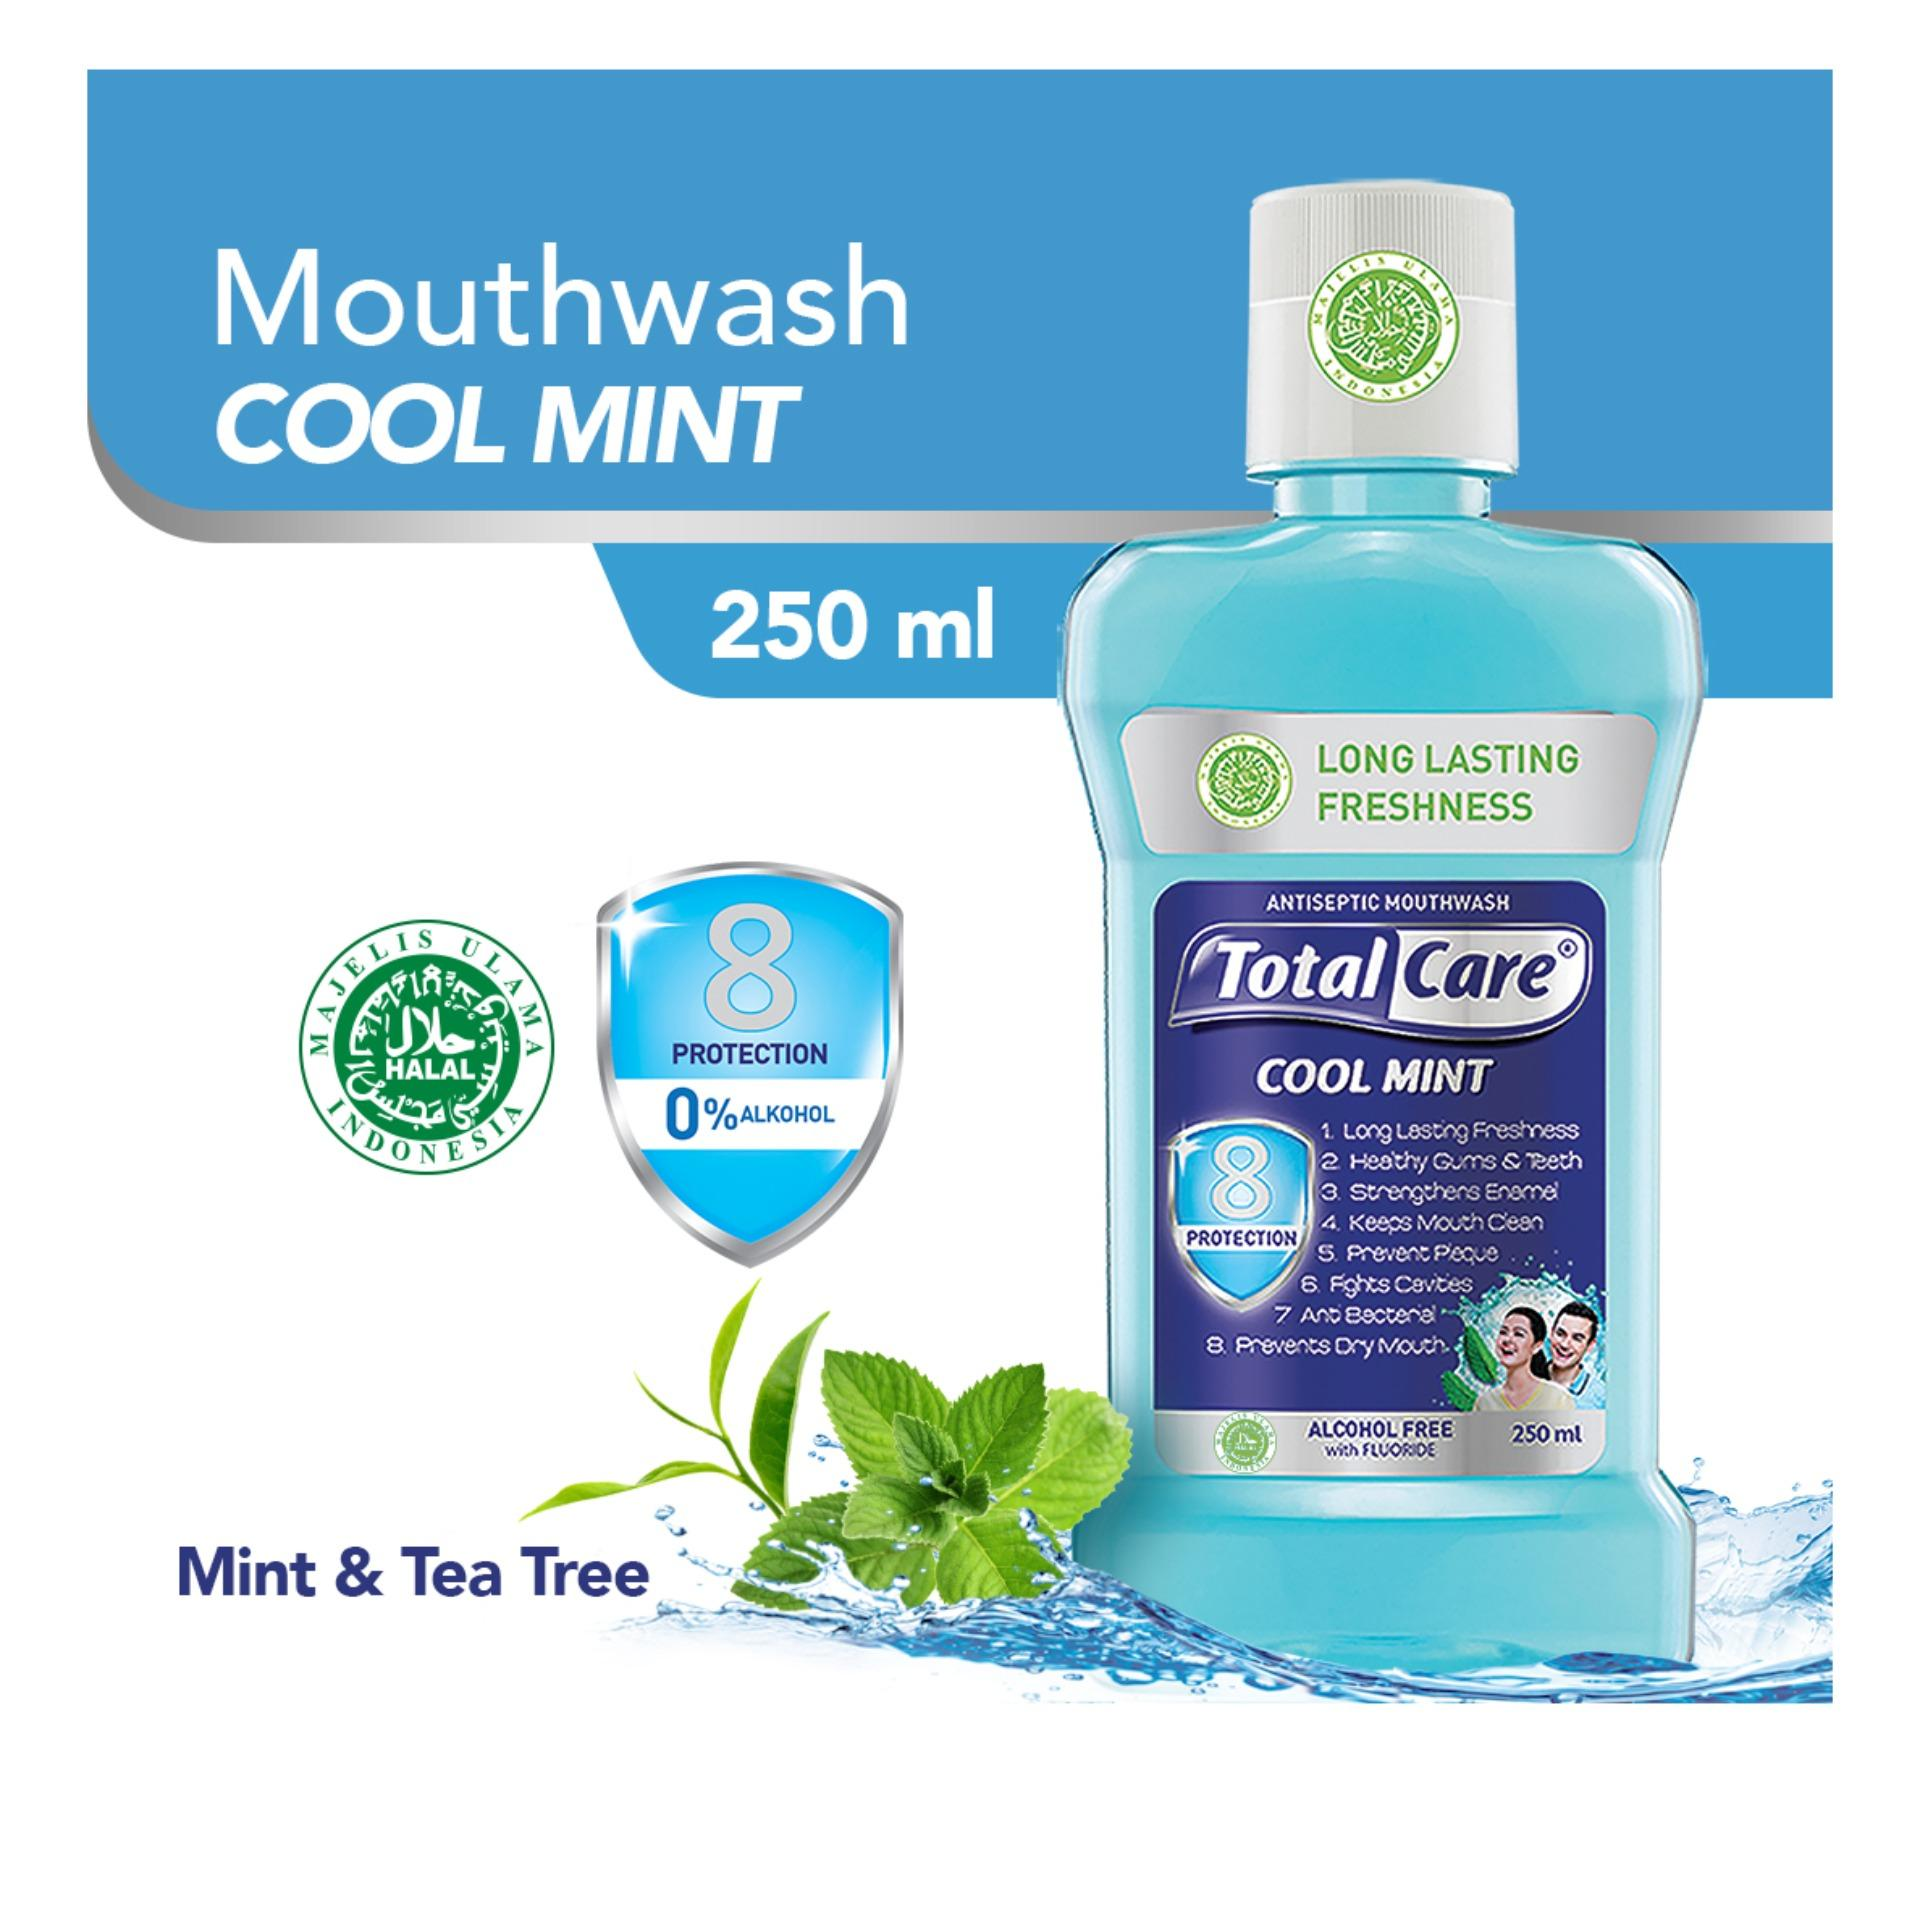 Total Care Mouthwash Coolmint 8 Protection 250 ml